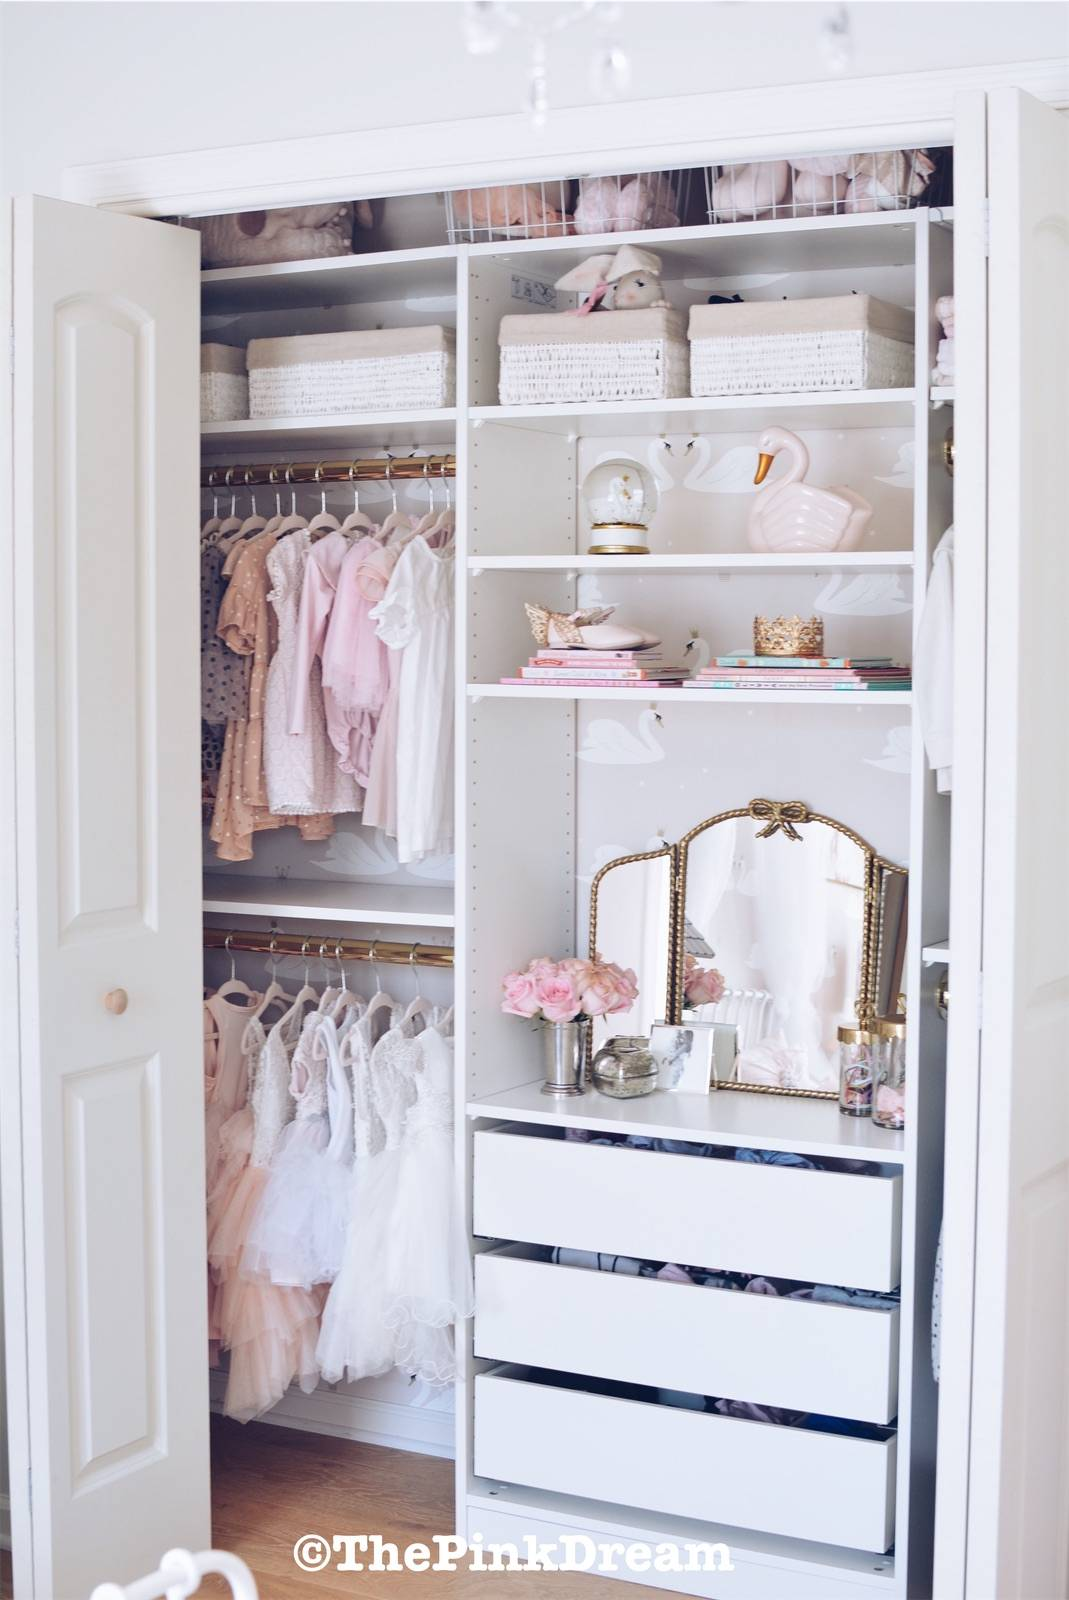 Ikea Pax Hack How To Customize A Small Closet With The Pax System The Pink Dream